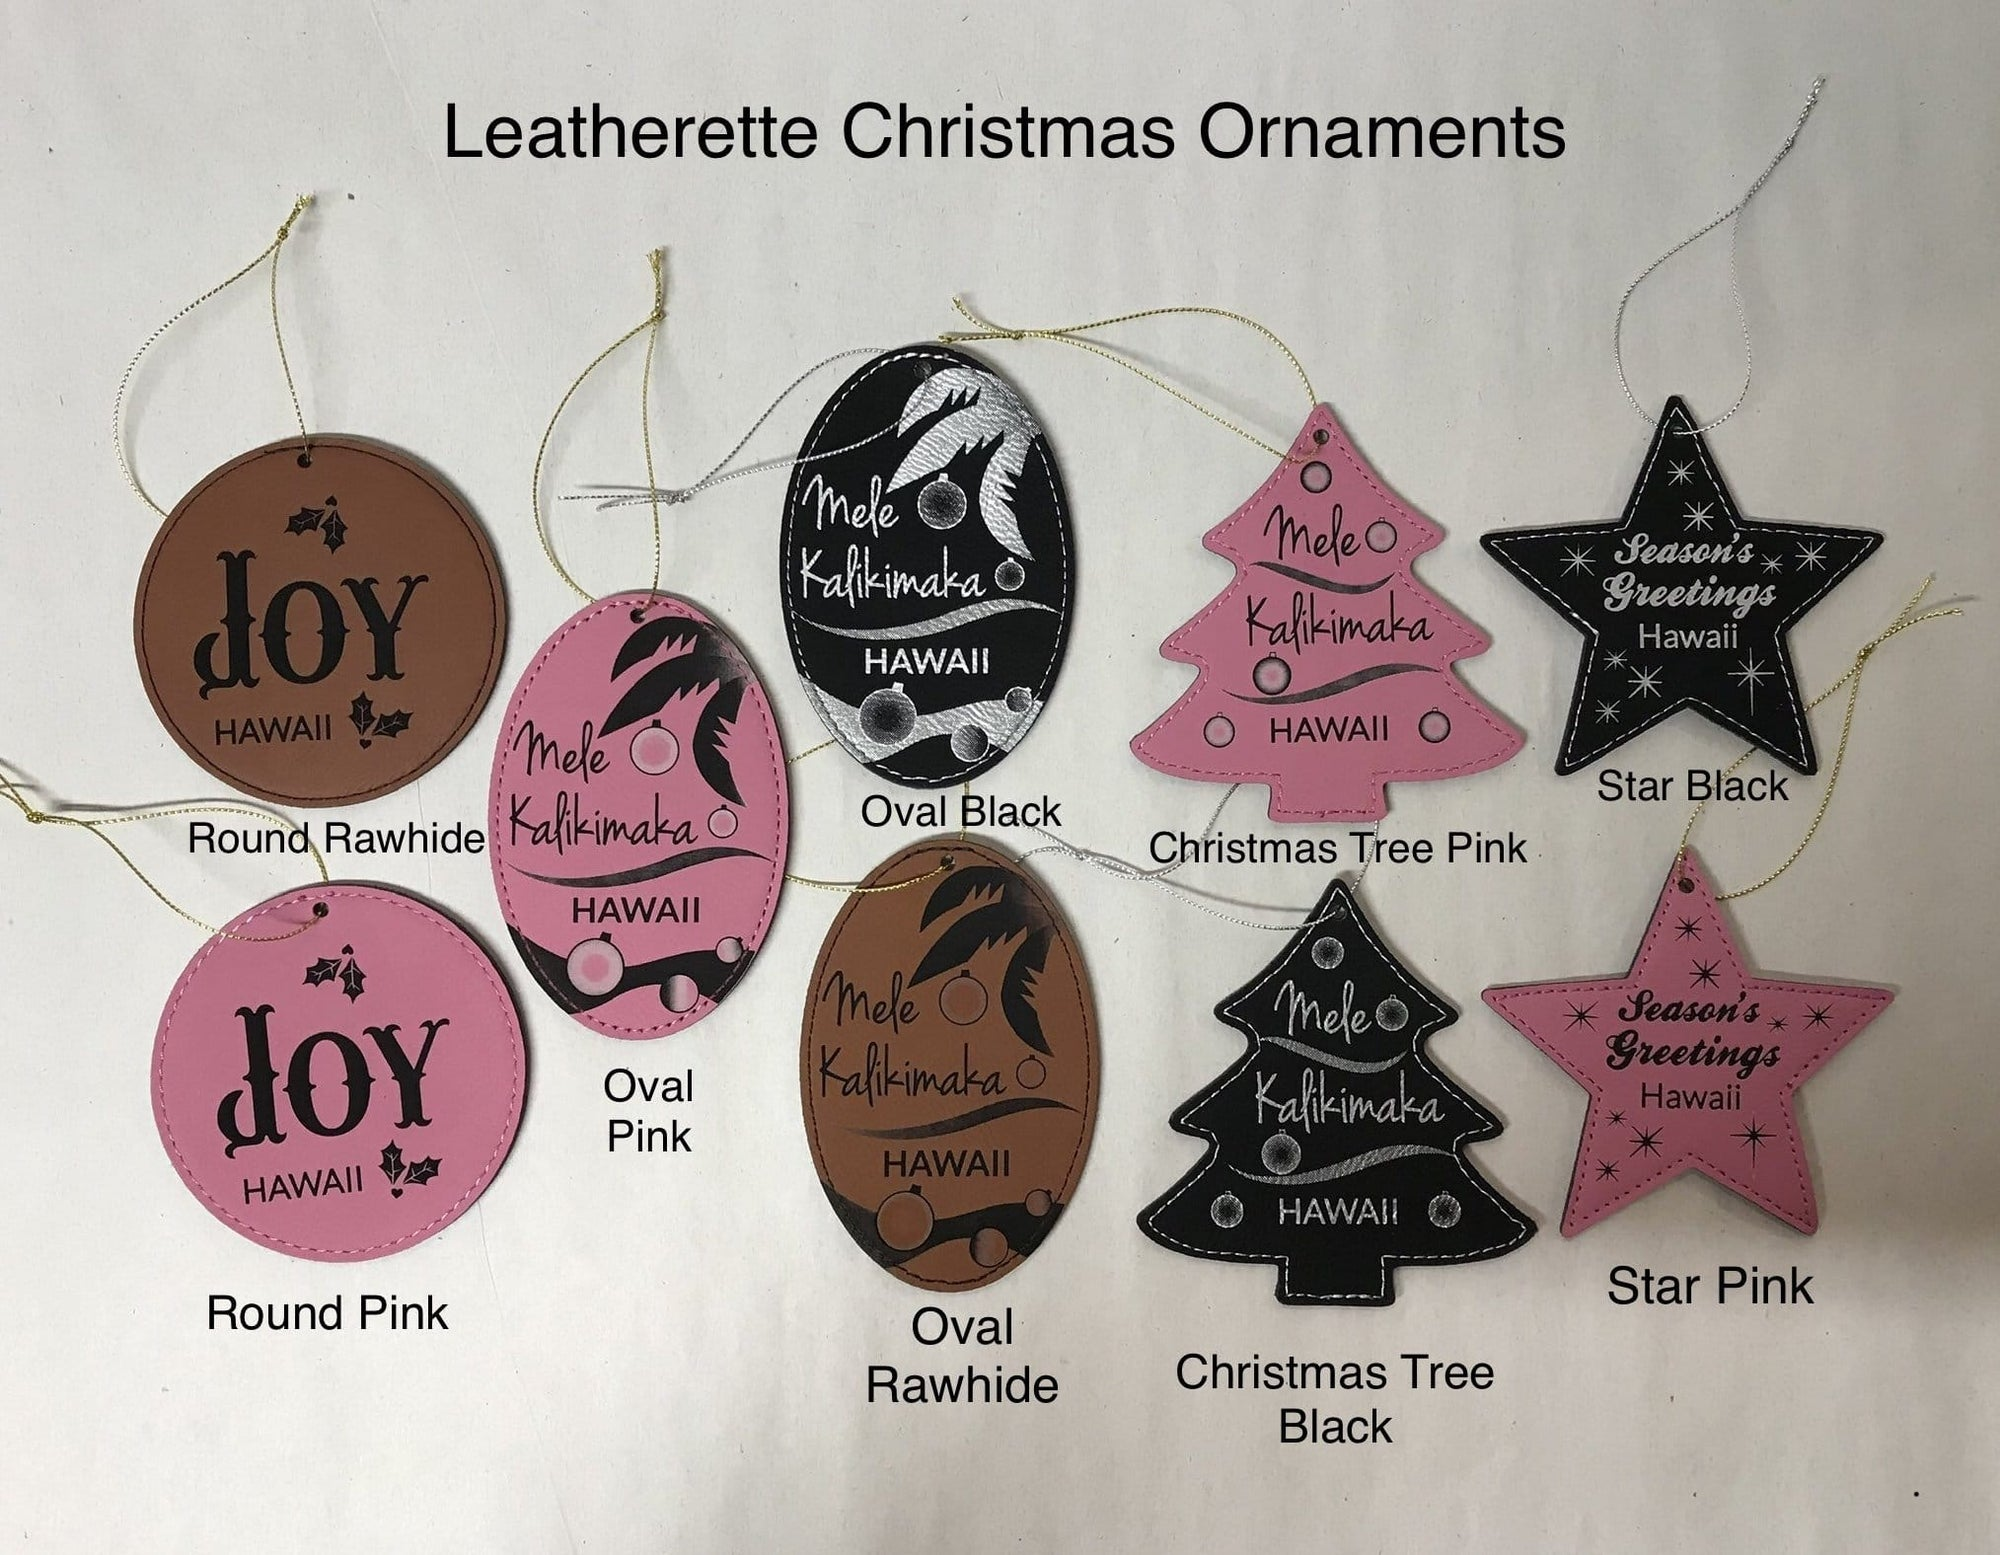 Leatherette Christmas Ornament: Round Design